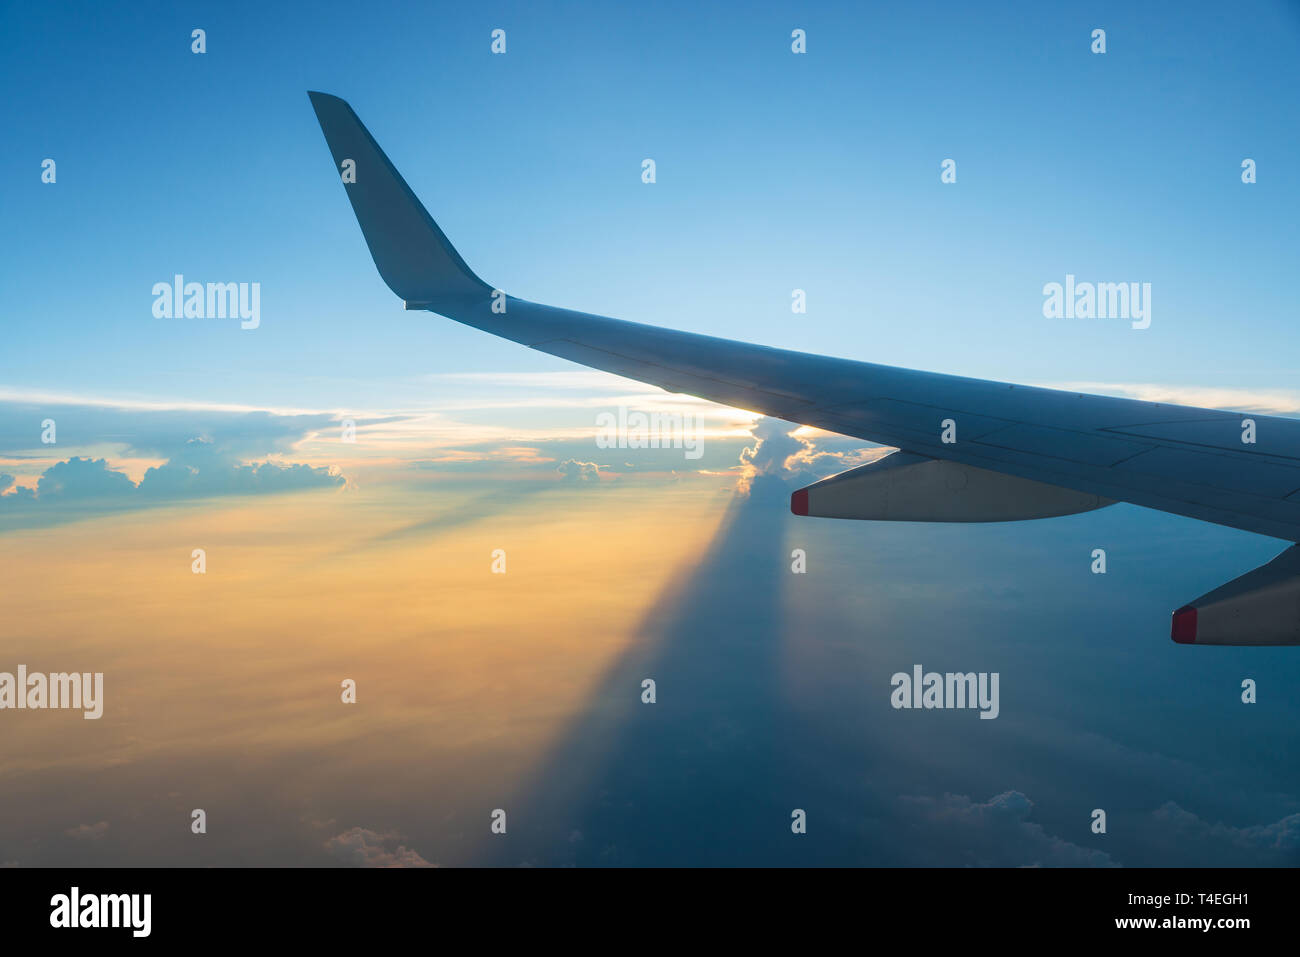 View of airplane wing and sunset sky. Plane in flight, clouds project long shadows. - Stock Image